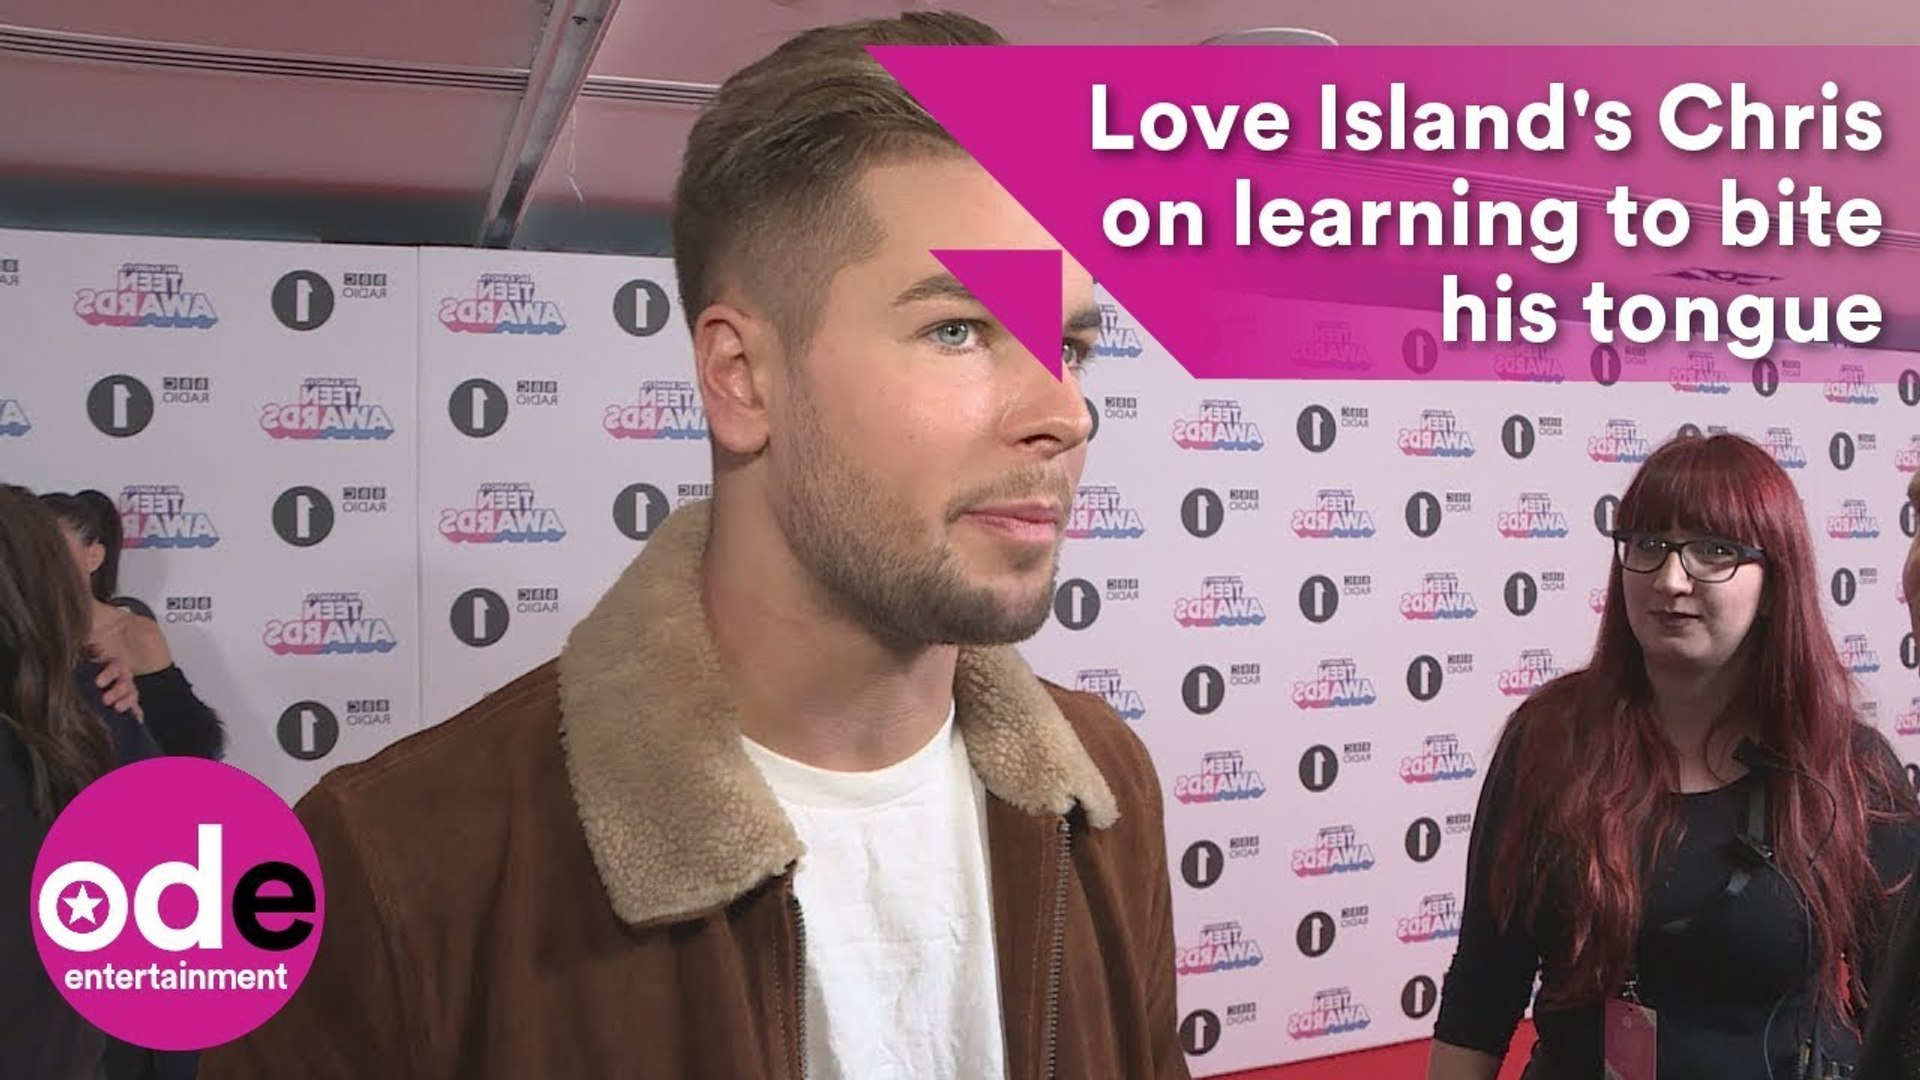 Love Island's Chris says he is learning to bite his tongue